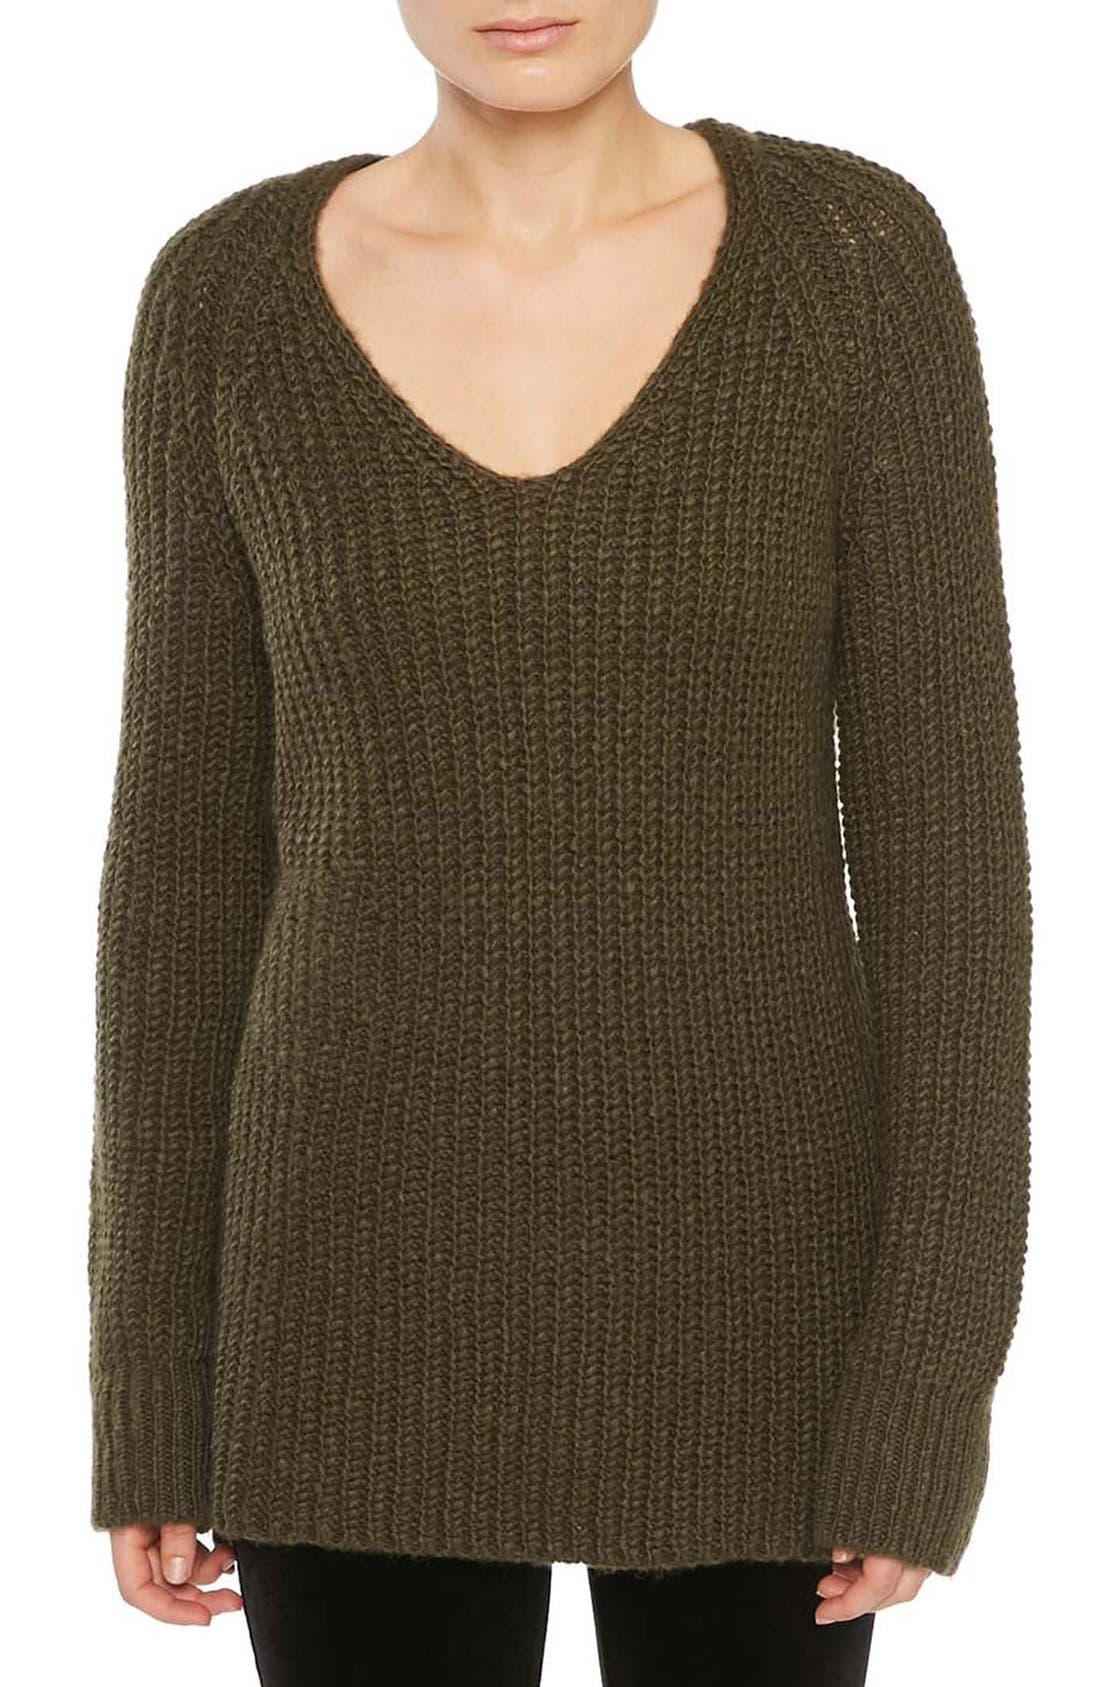 Alternate Image 1 Selected - Sanctuary Sequoia V-Neck Sweater